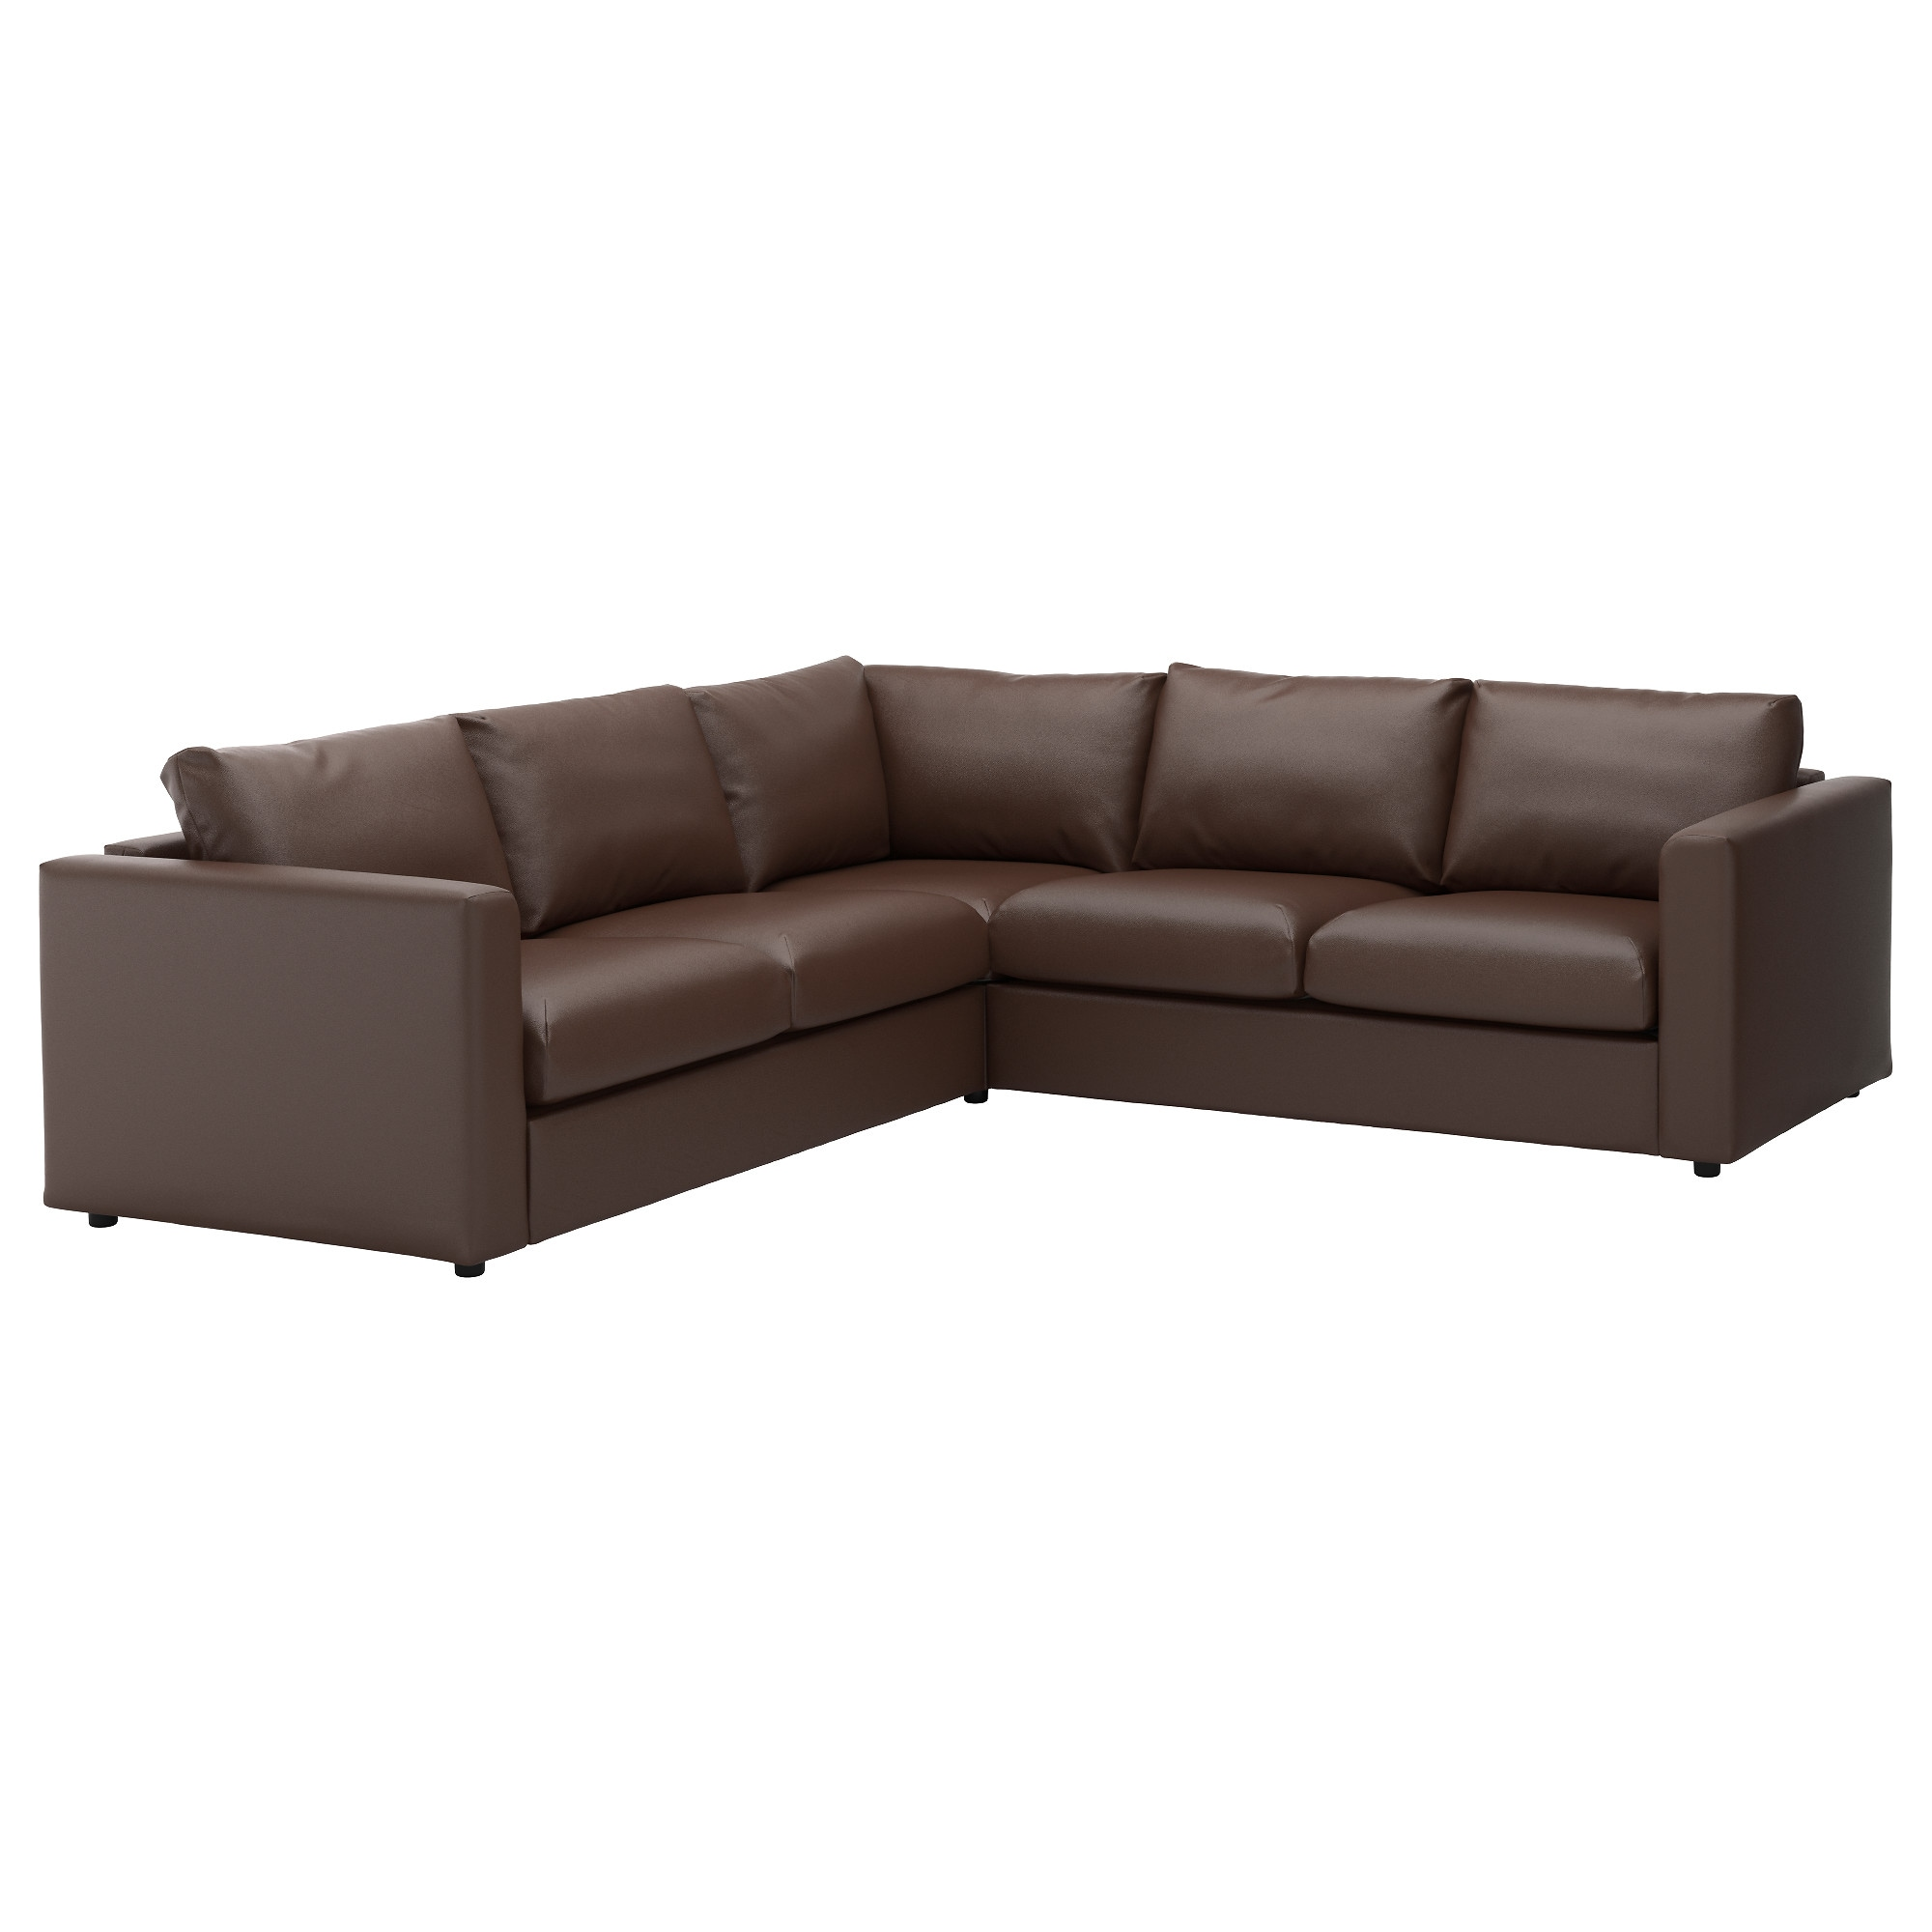 Ikea manstad corner sofa bed rise of the manstad clones for Ikea manstad sofa couch bett